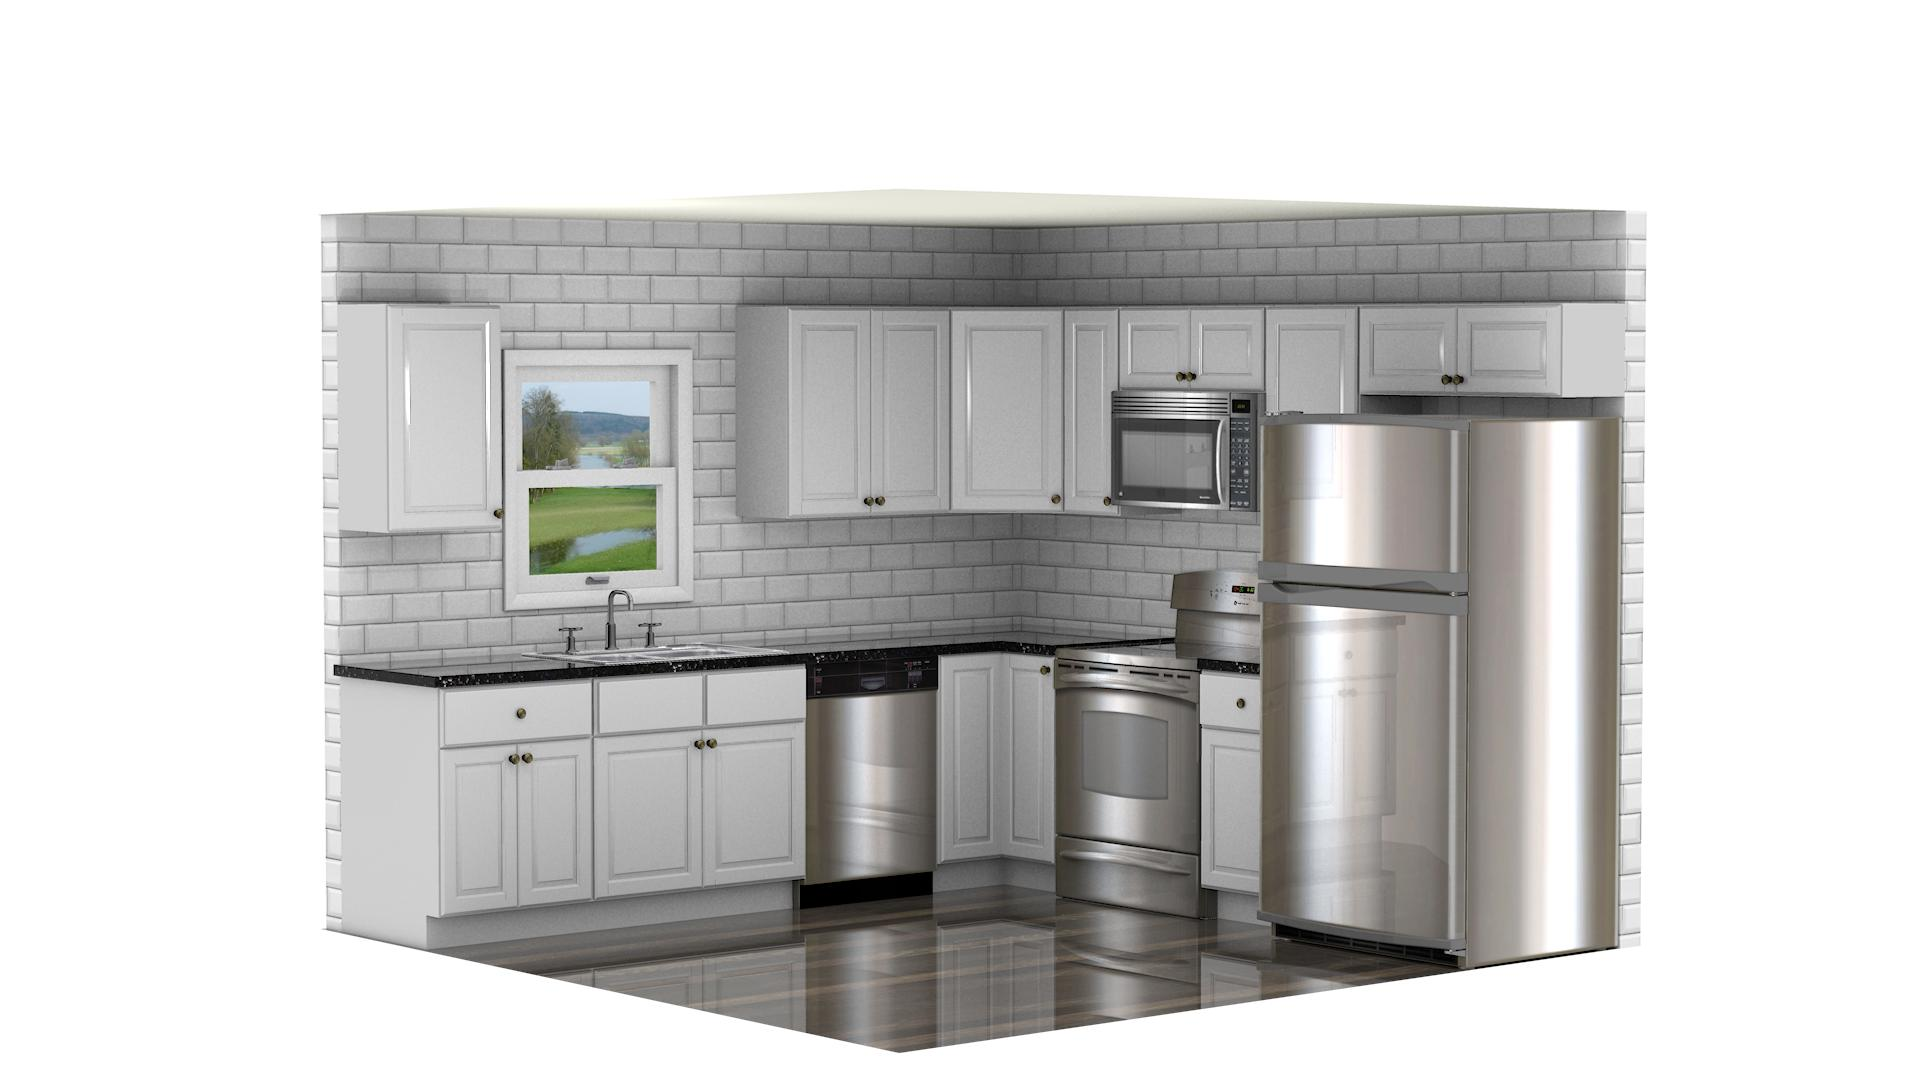 Grand Reserve Cherry Kitchen Cabinets With White Appliances White Slab Door Cabinets And